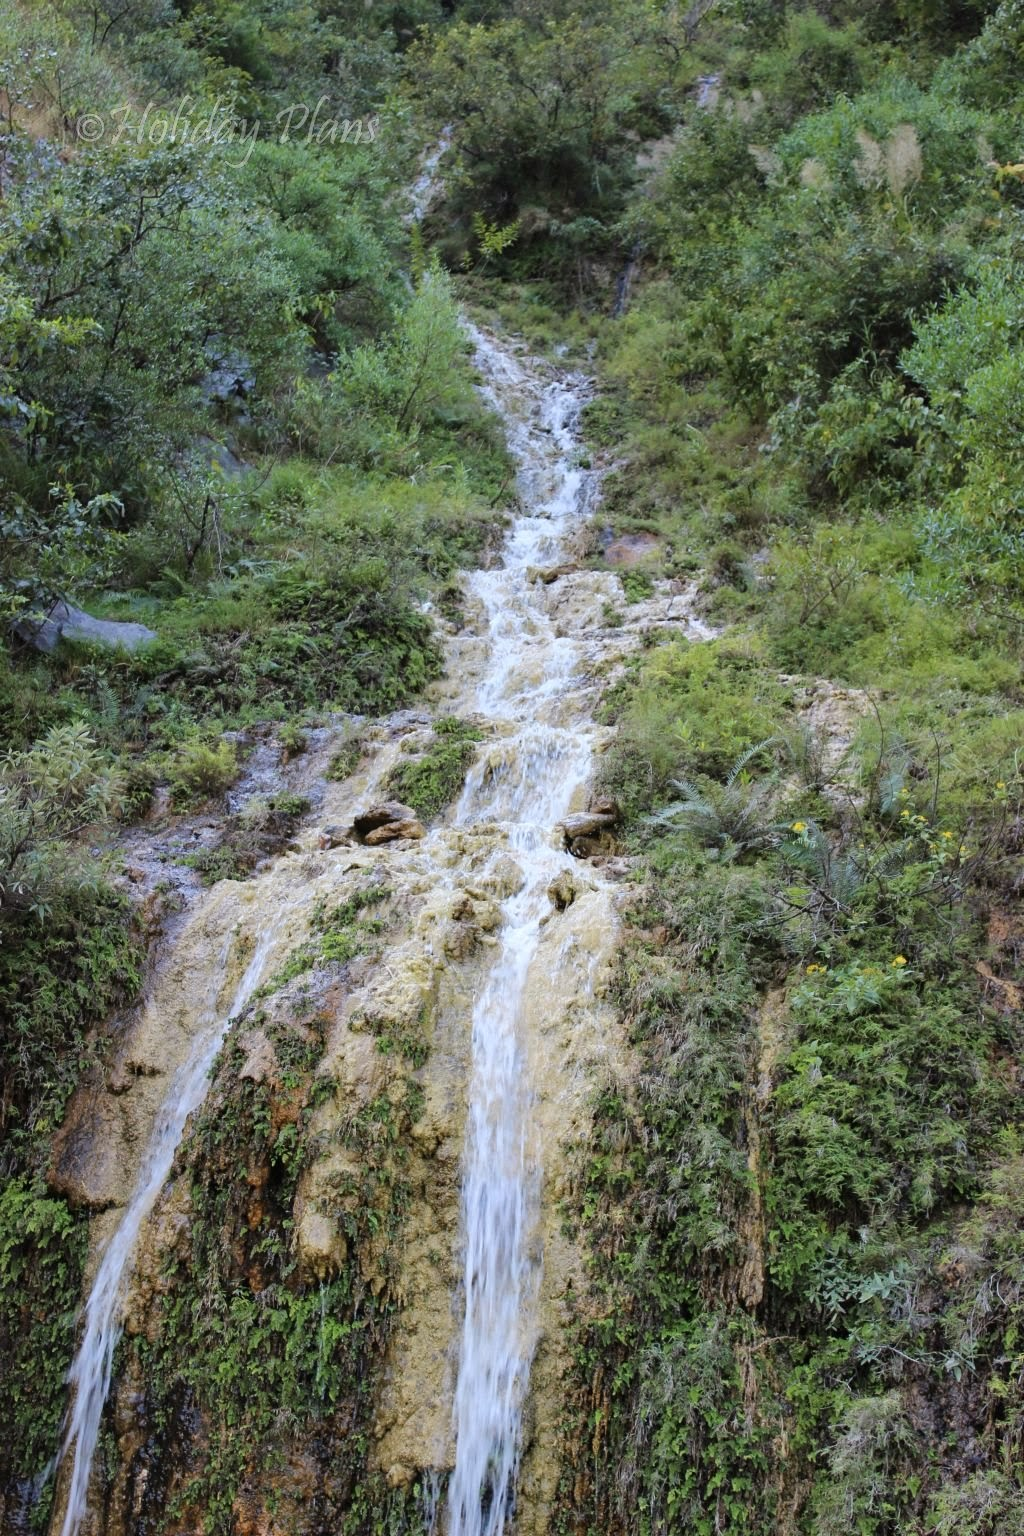 Waterfalls in the journey